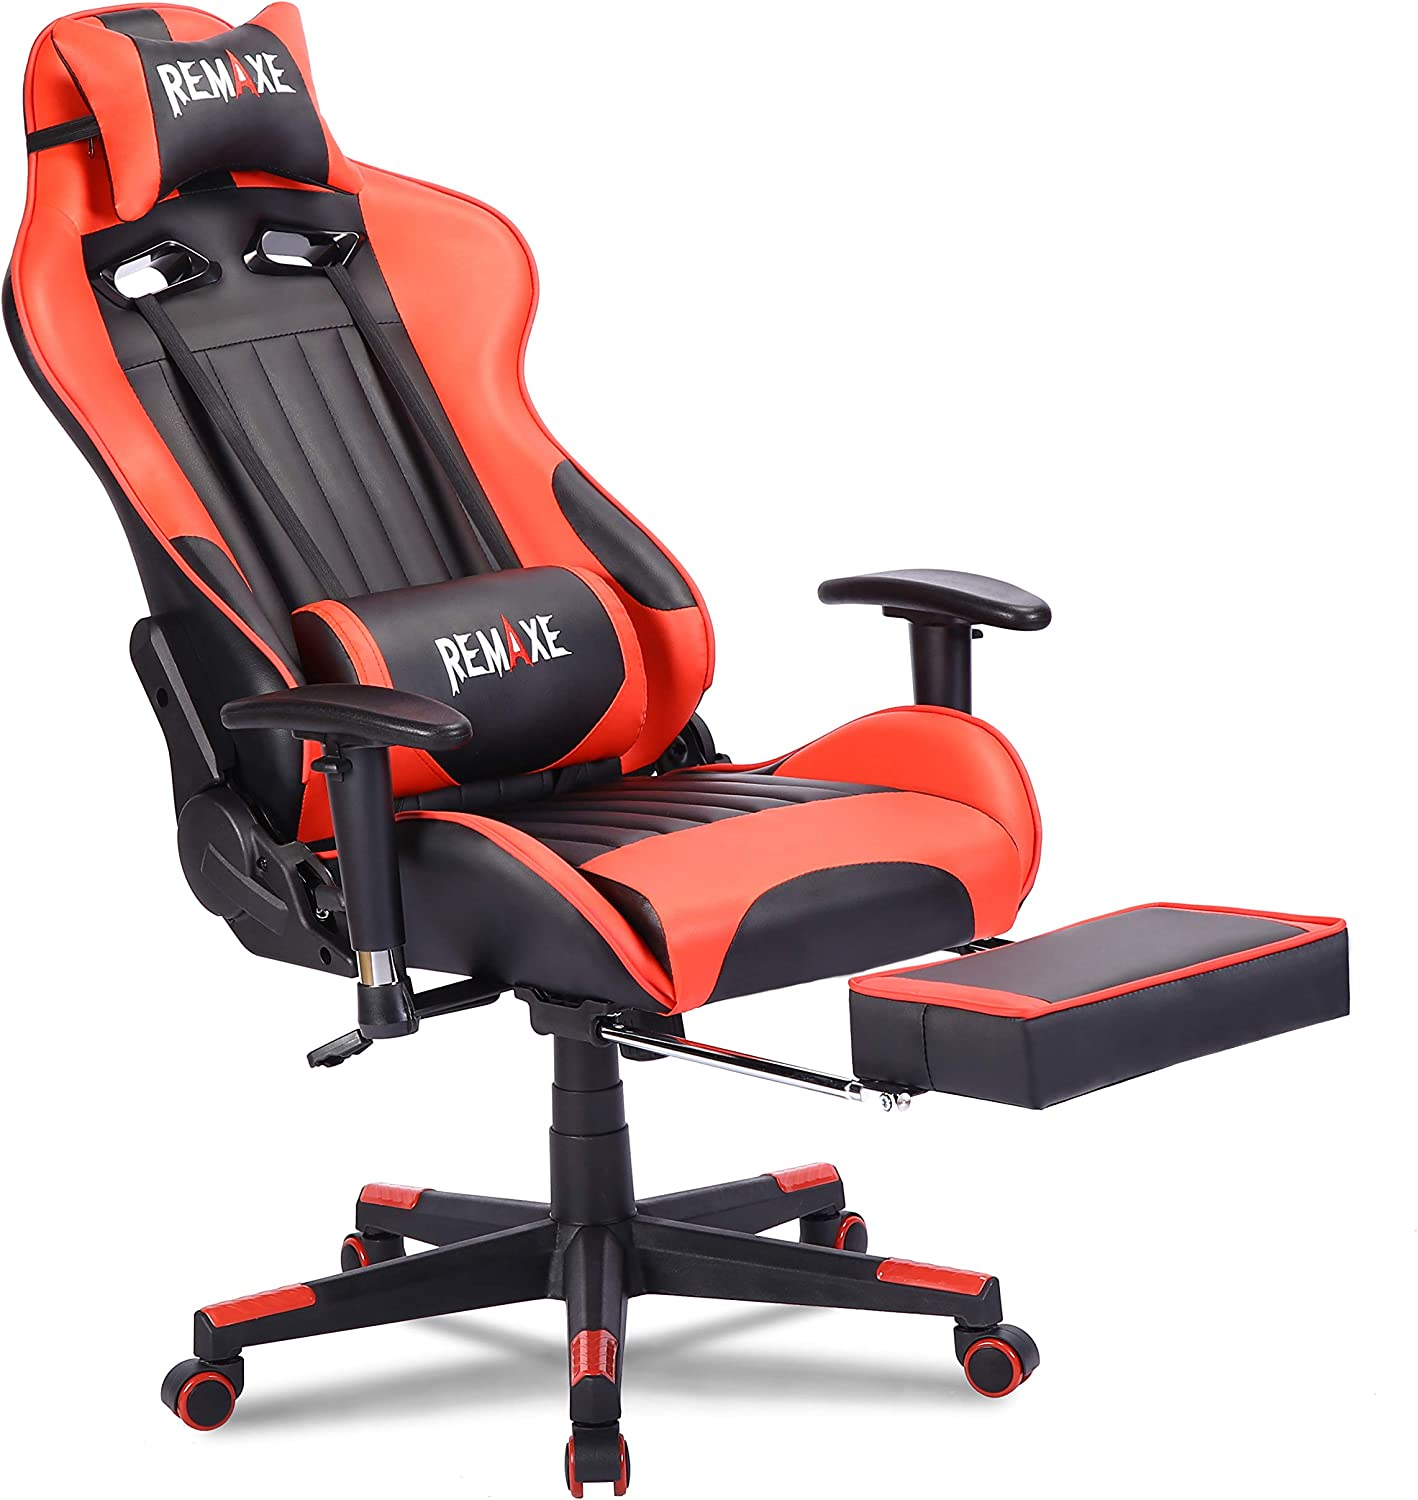 Gaming Chair with Footrest,Computer Gaming Chair High-Back Racing Chair,PU Leather Executive Office Chair with Headrest & Massage Lumbar Pillow,Red